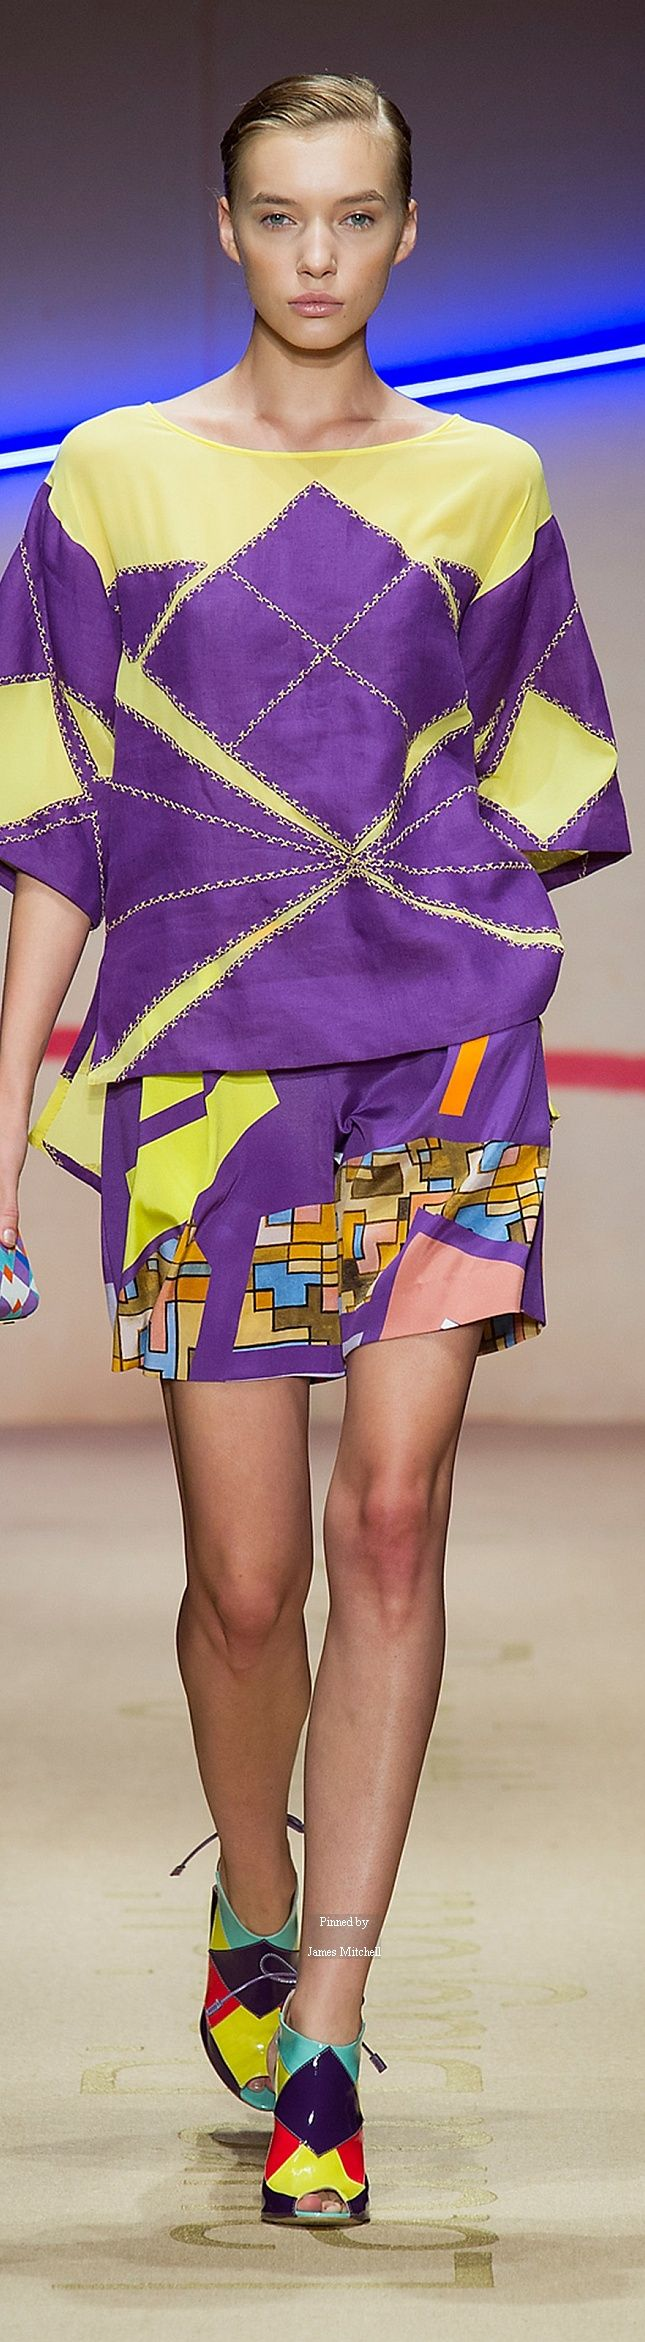 Laura Biagiotti Spring Summer 2015 Ready-To-Wear collection